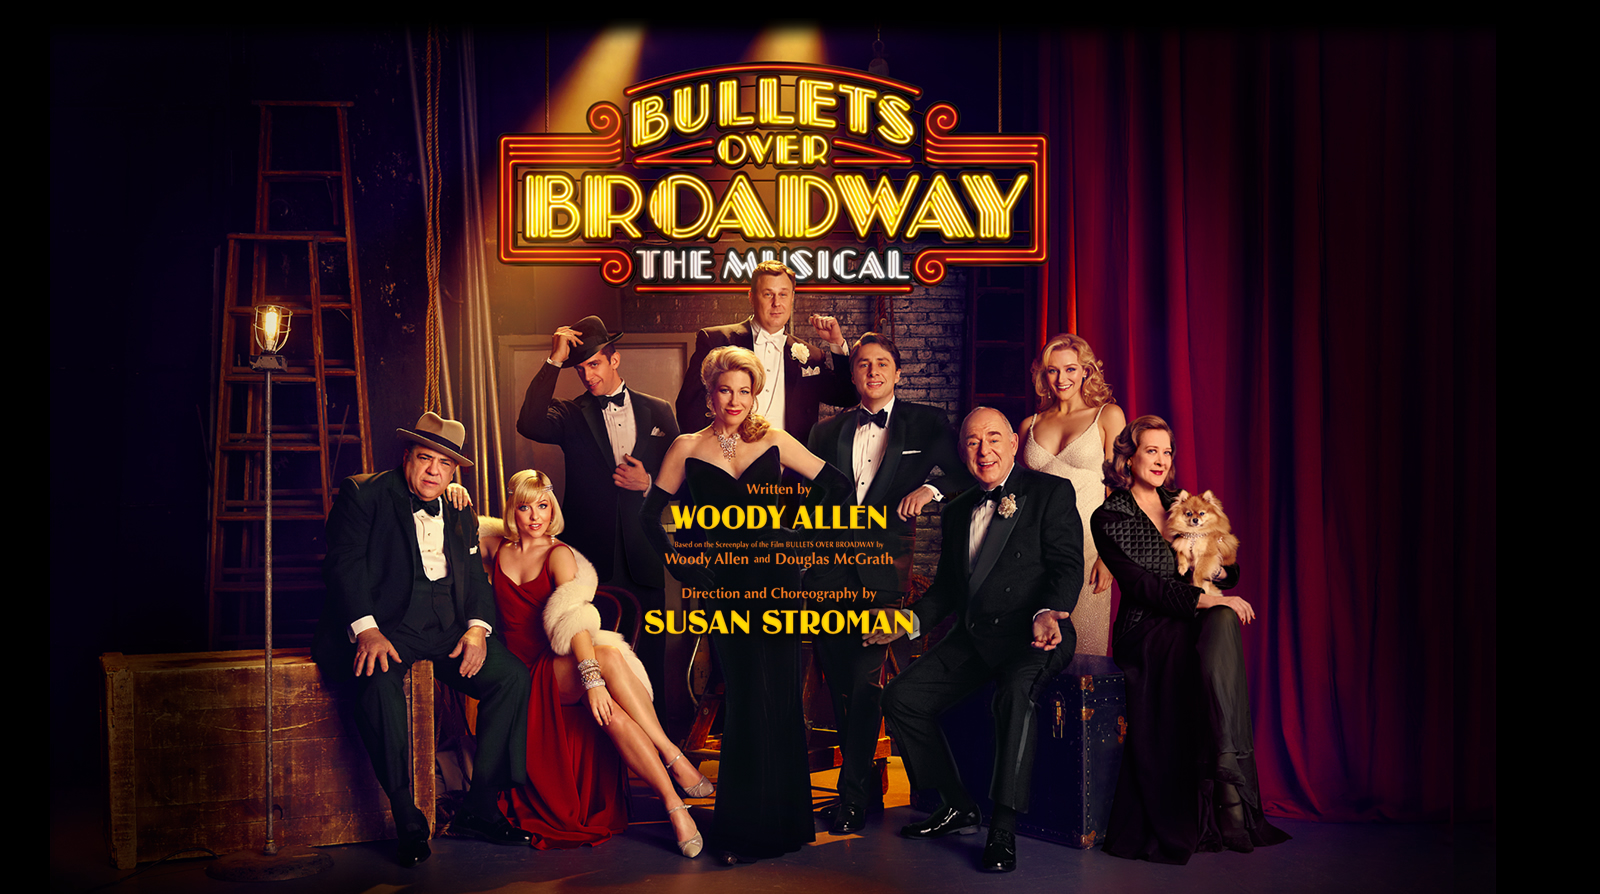 Broadway Bullets Over Broadway To Close On August 24